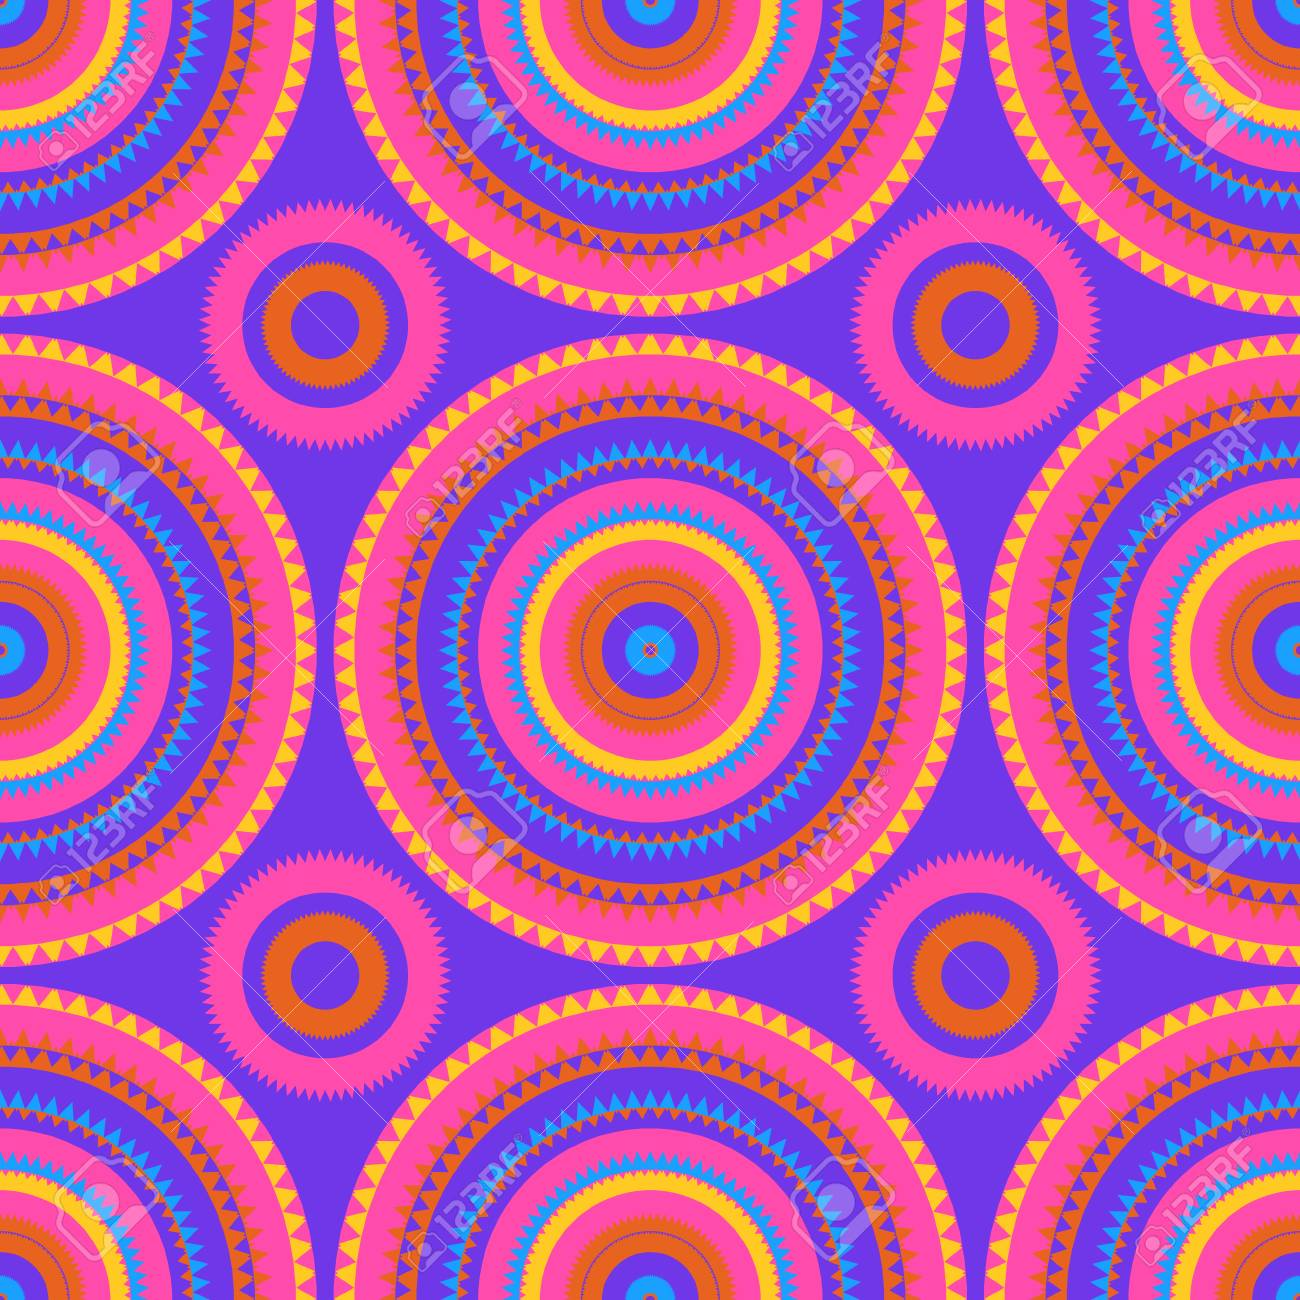 Vibrant circular large scale seamless pattern, abstract colorful background, texture. - 112173940